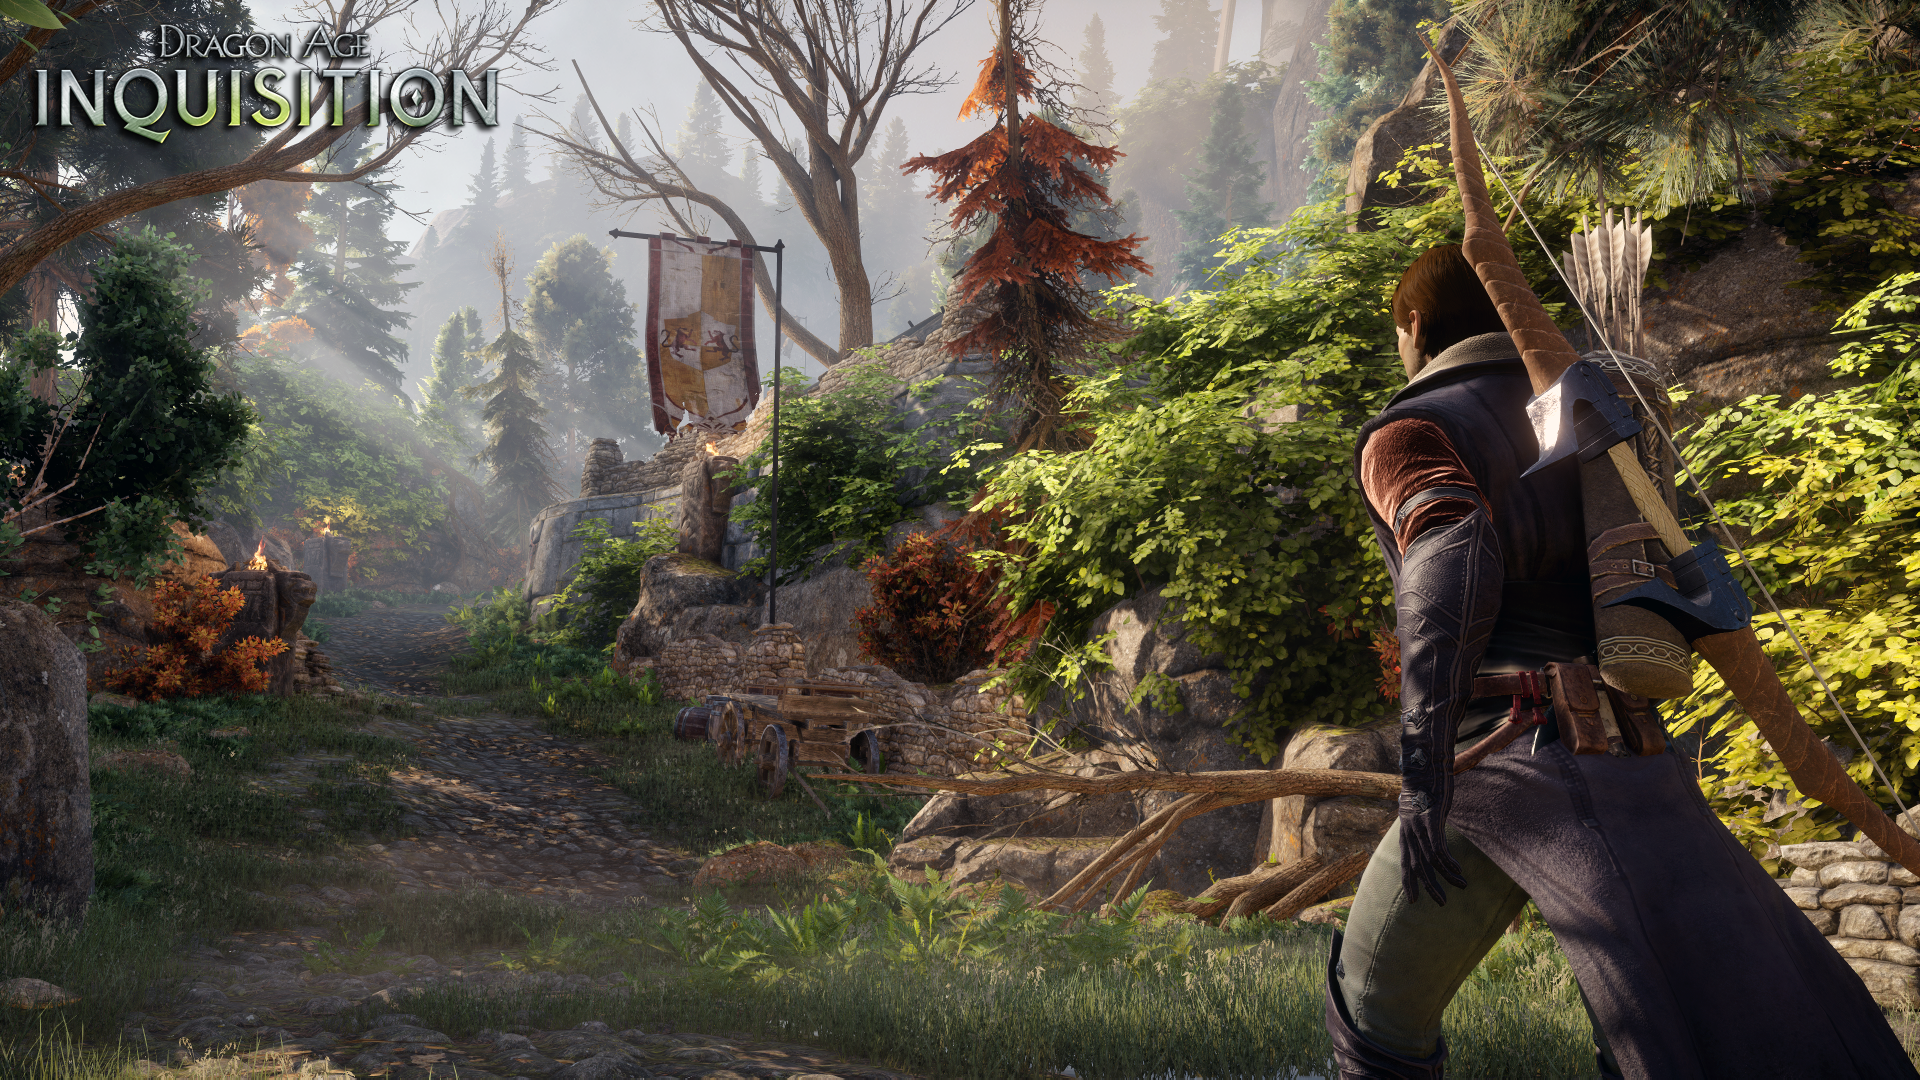 Download Dragon Age Inquisition Wallpaper Hd 46384 1920x1080 Px